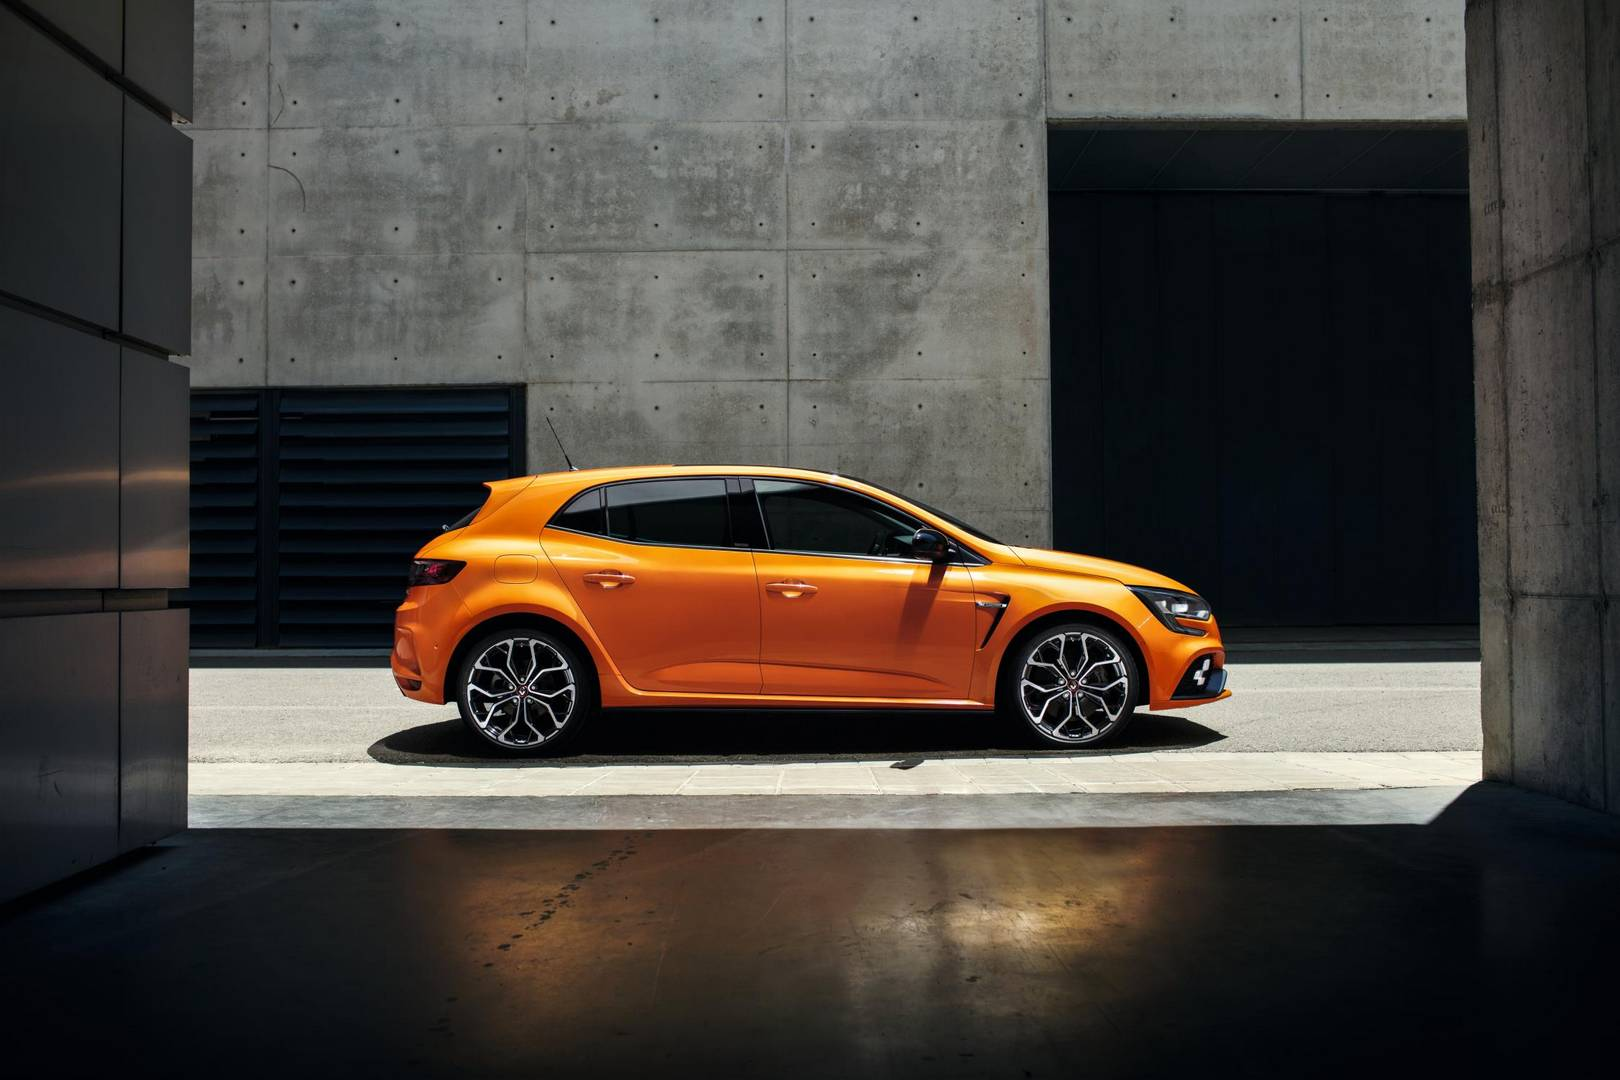 Renault Sport Megane RS revealed